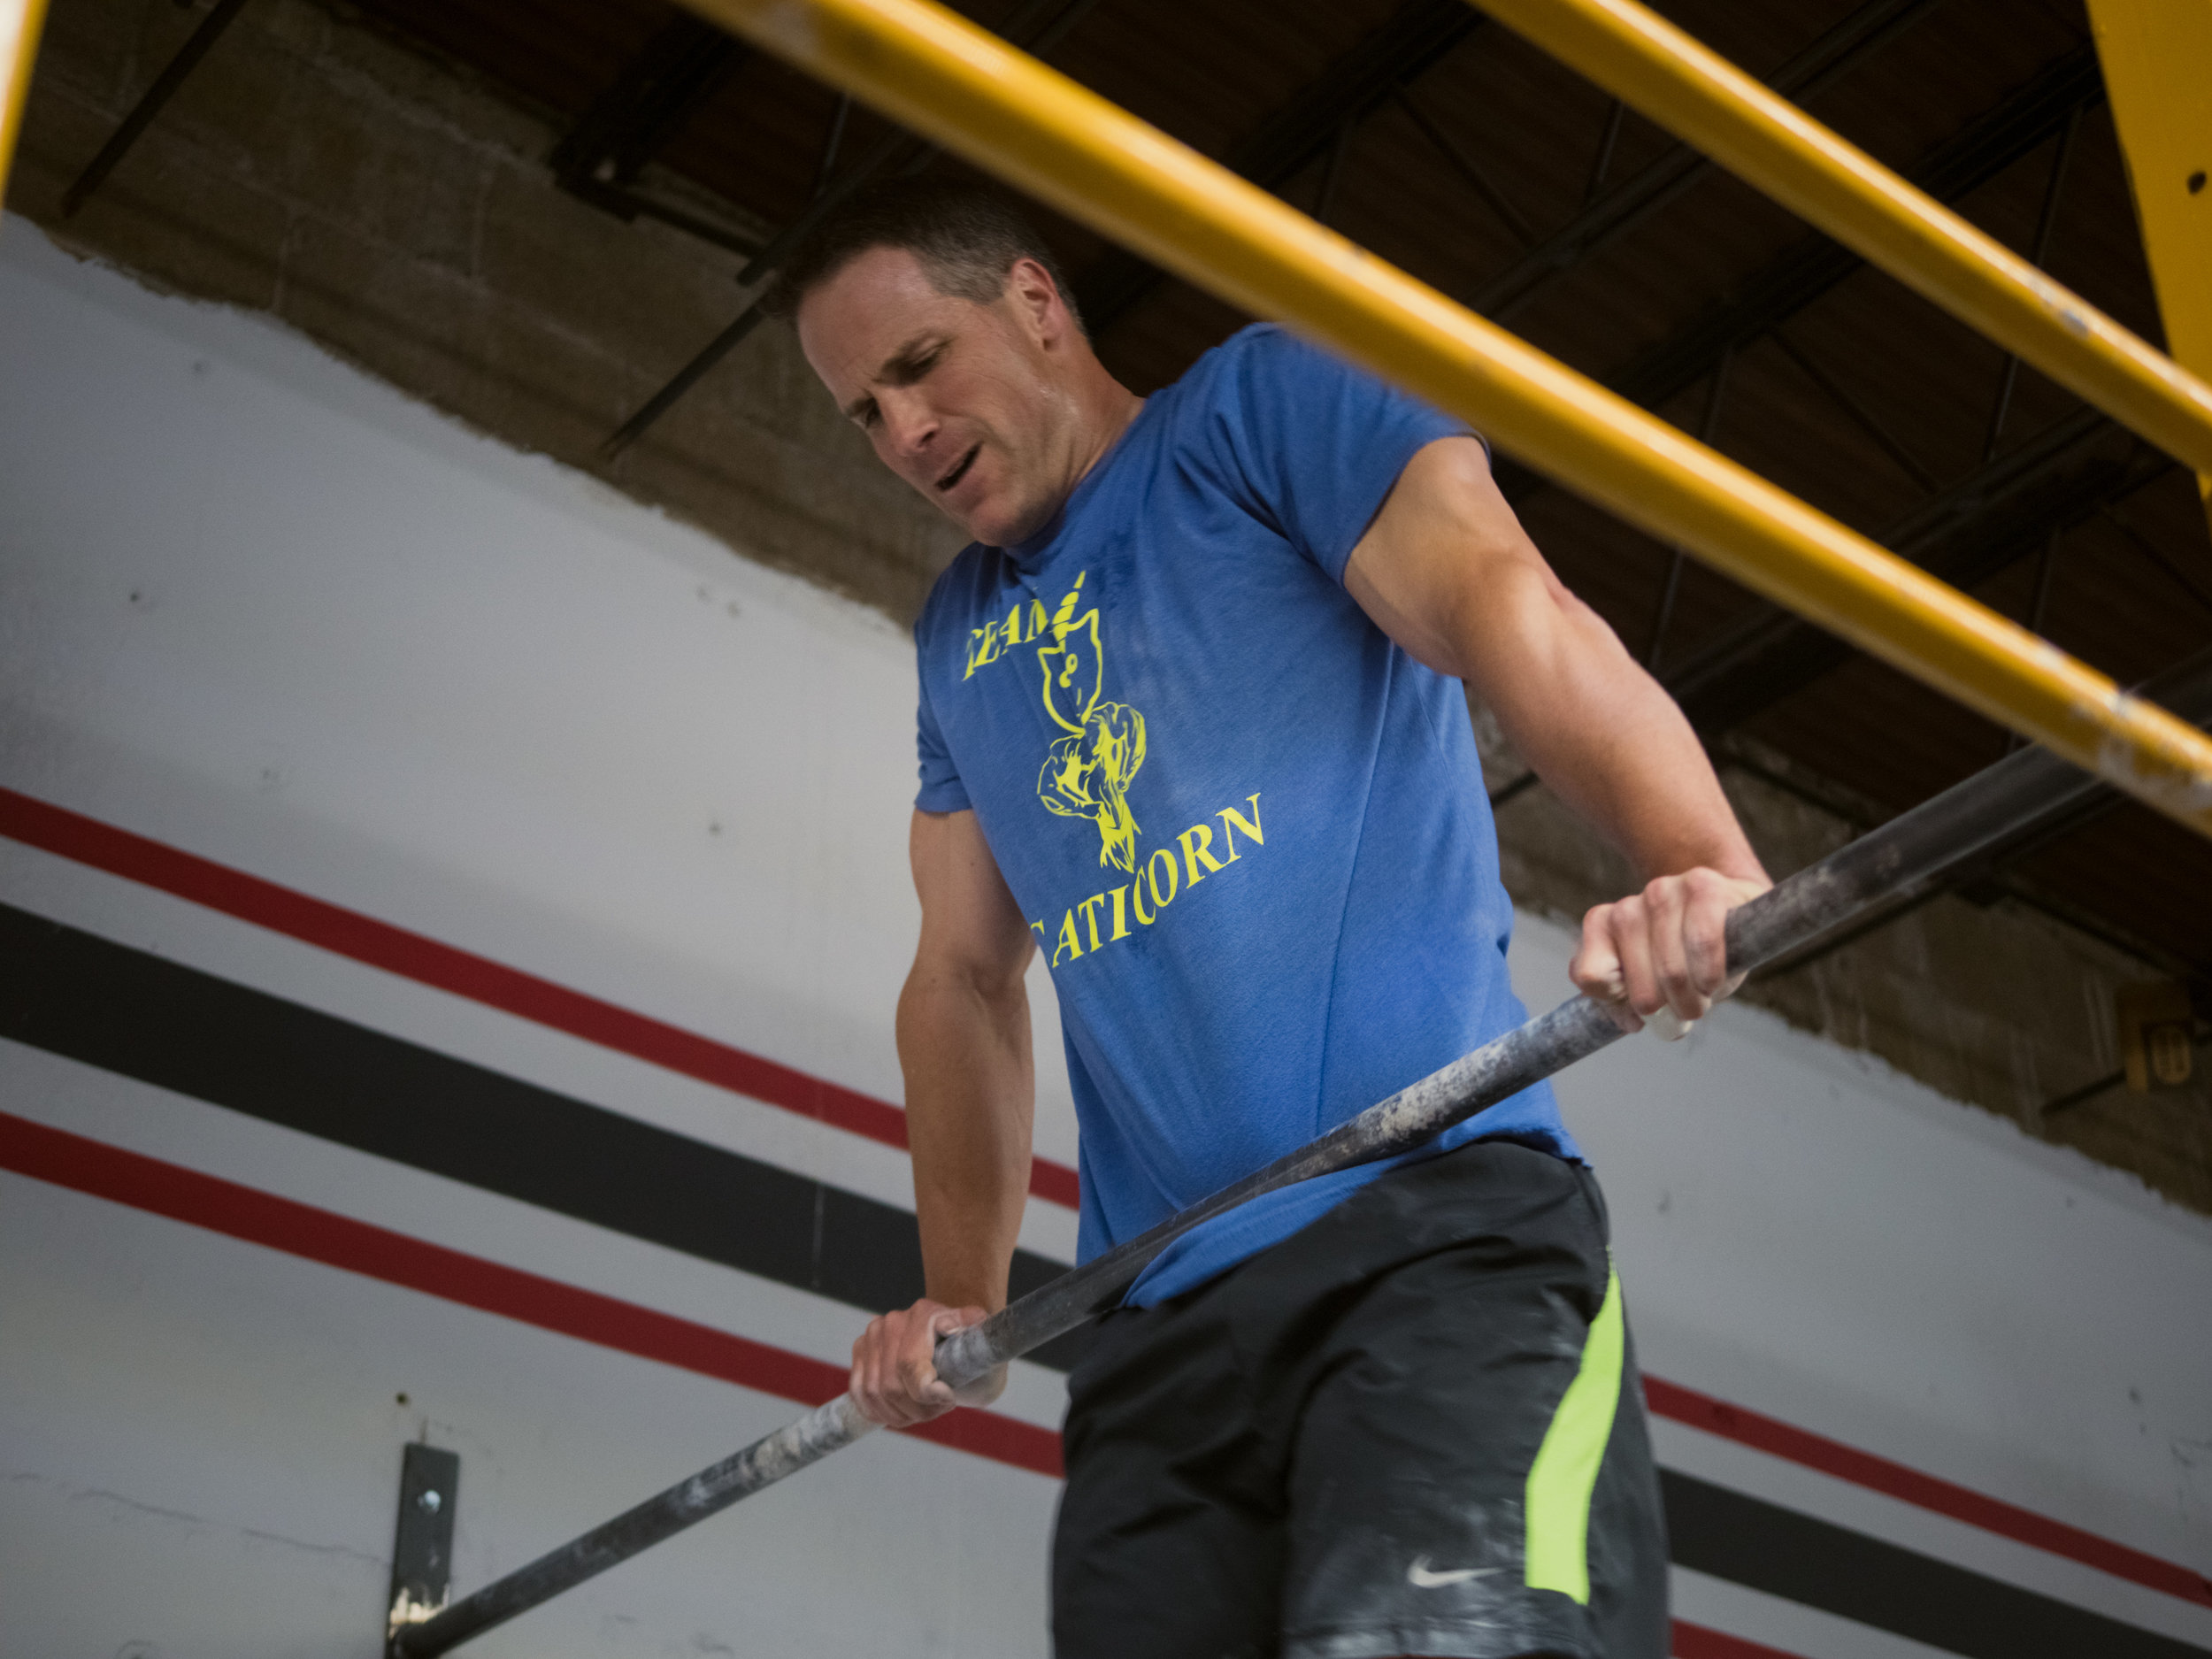 Steve doing some awesome bar muscle ups in 17.2